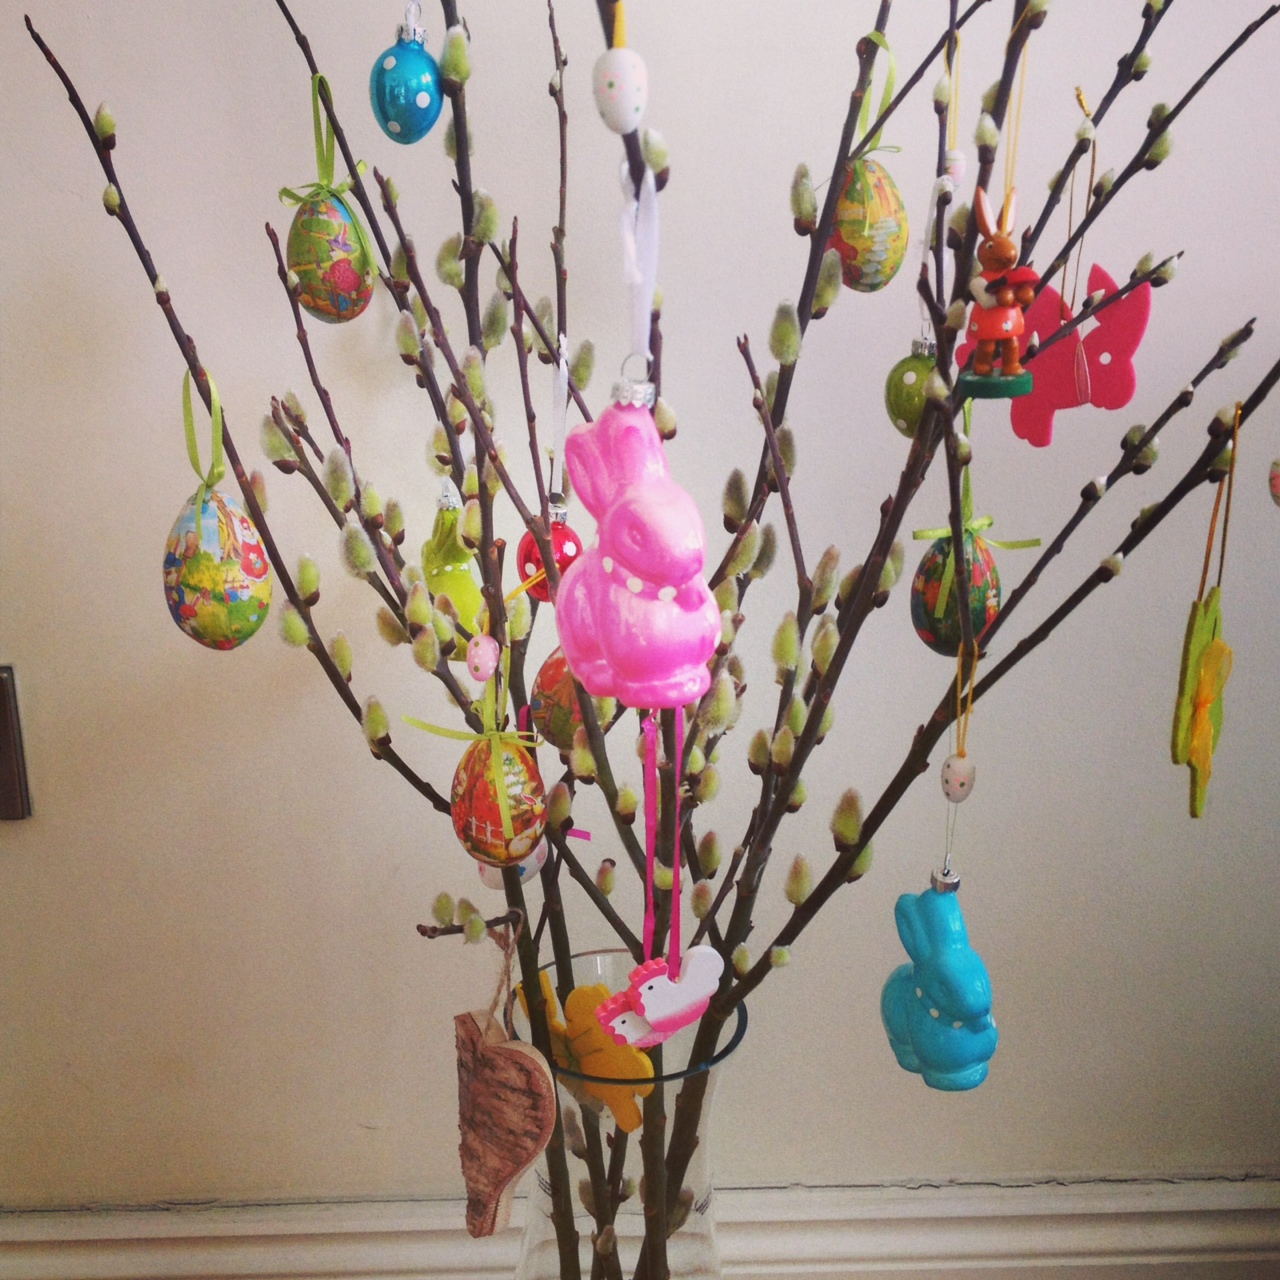 Proudly present my easter tree made of pussy willow and hanging